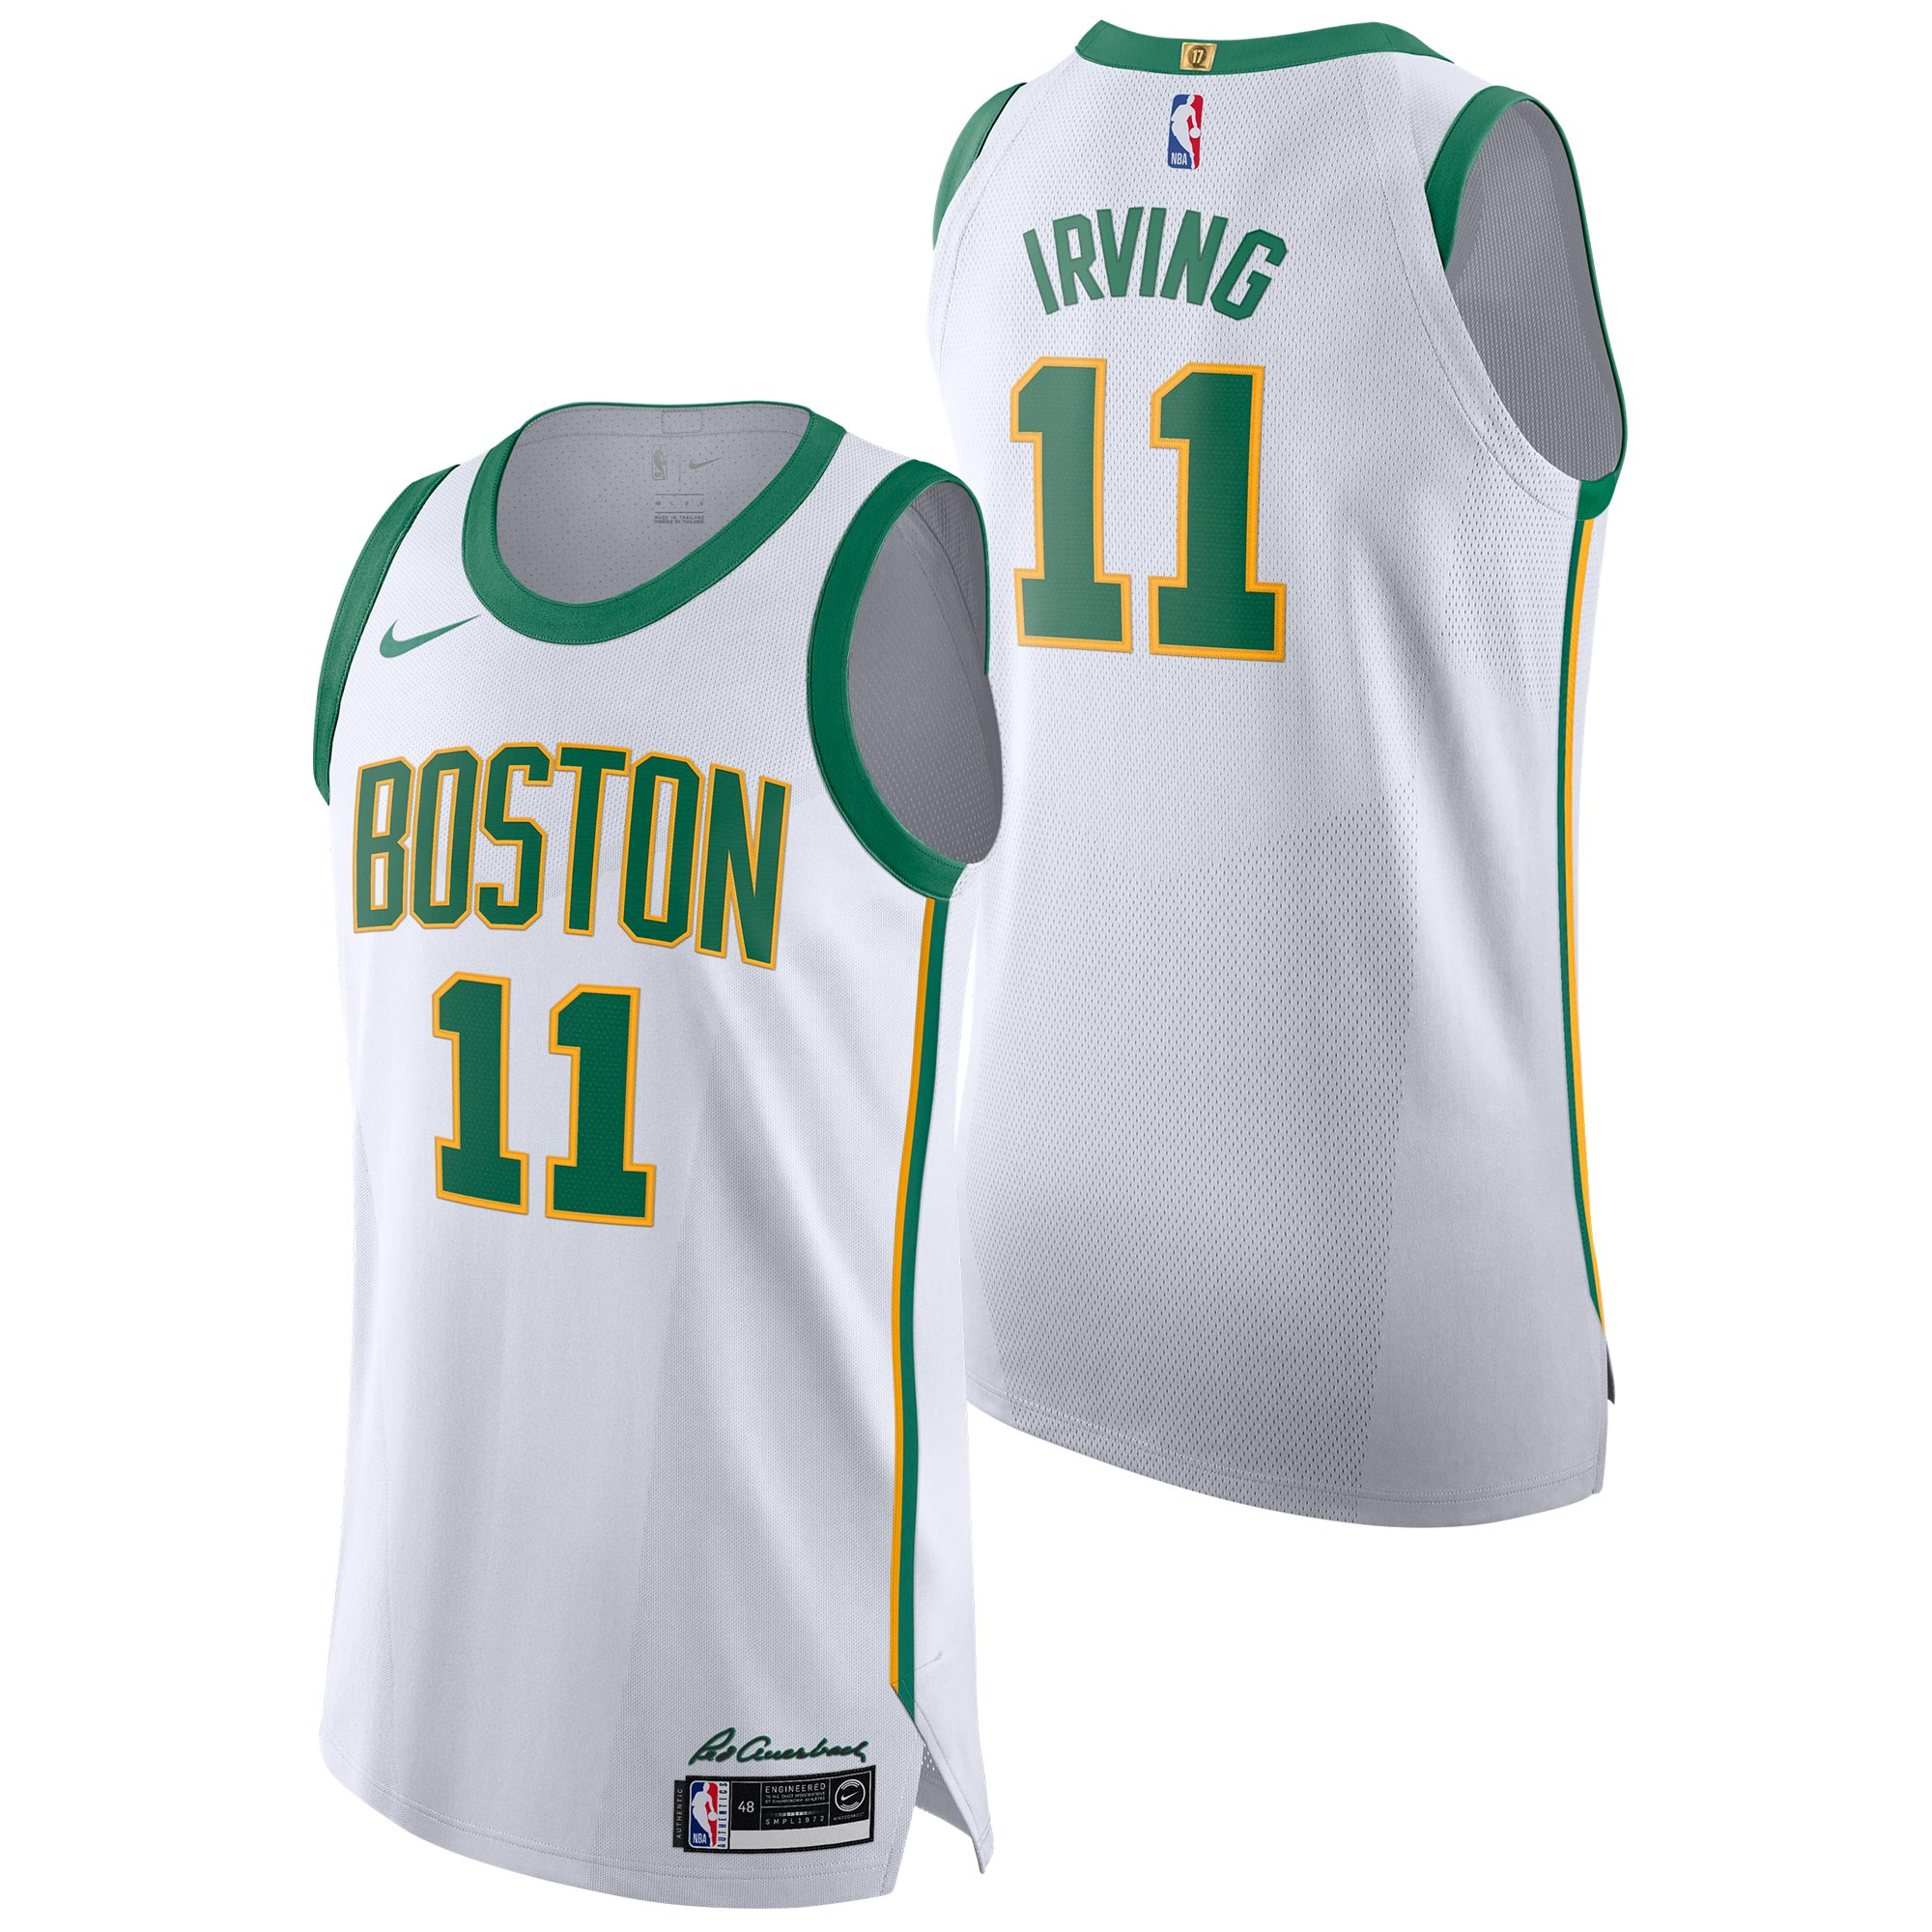 """Boston Celtics Nike City Edition Authentic Jersey - Kyrie Irving - Mens"""